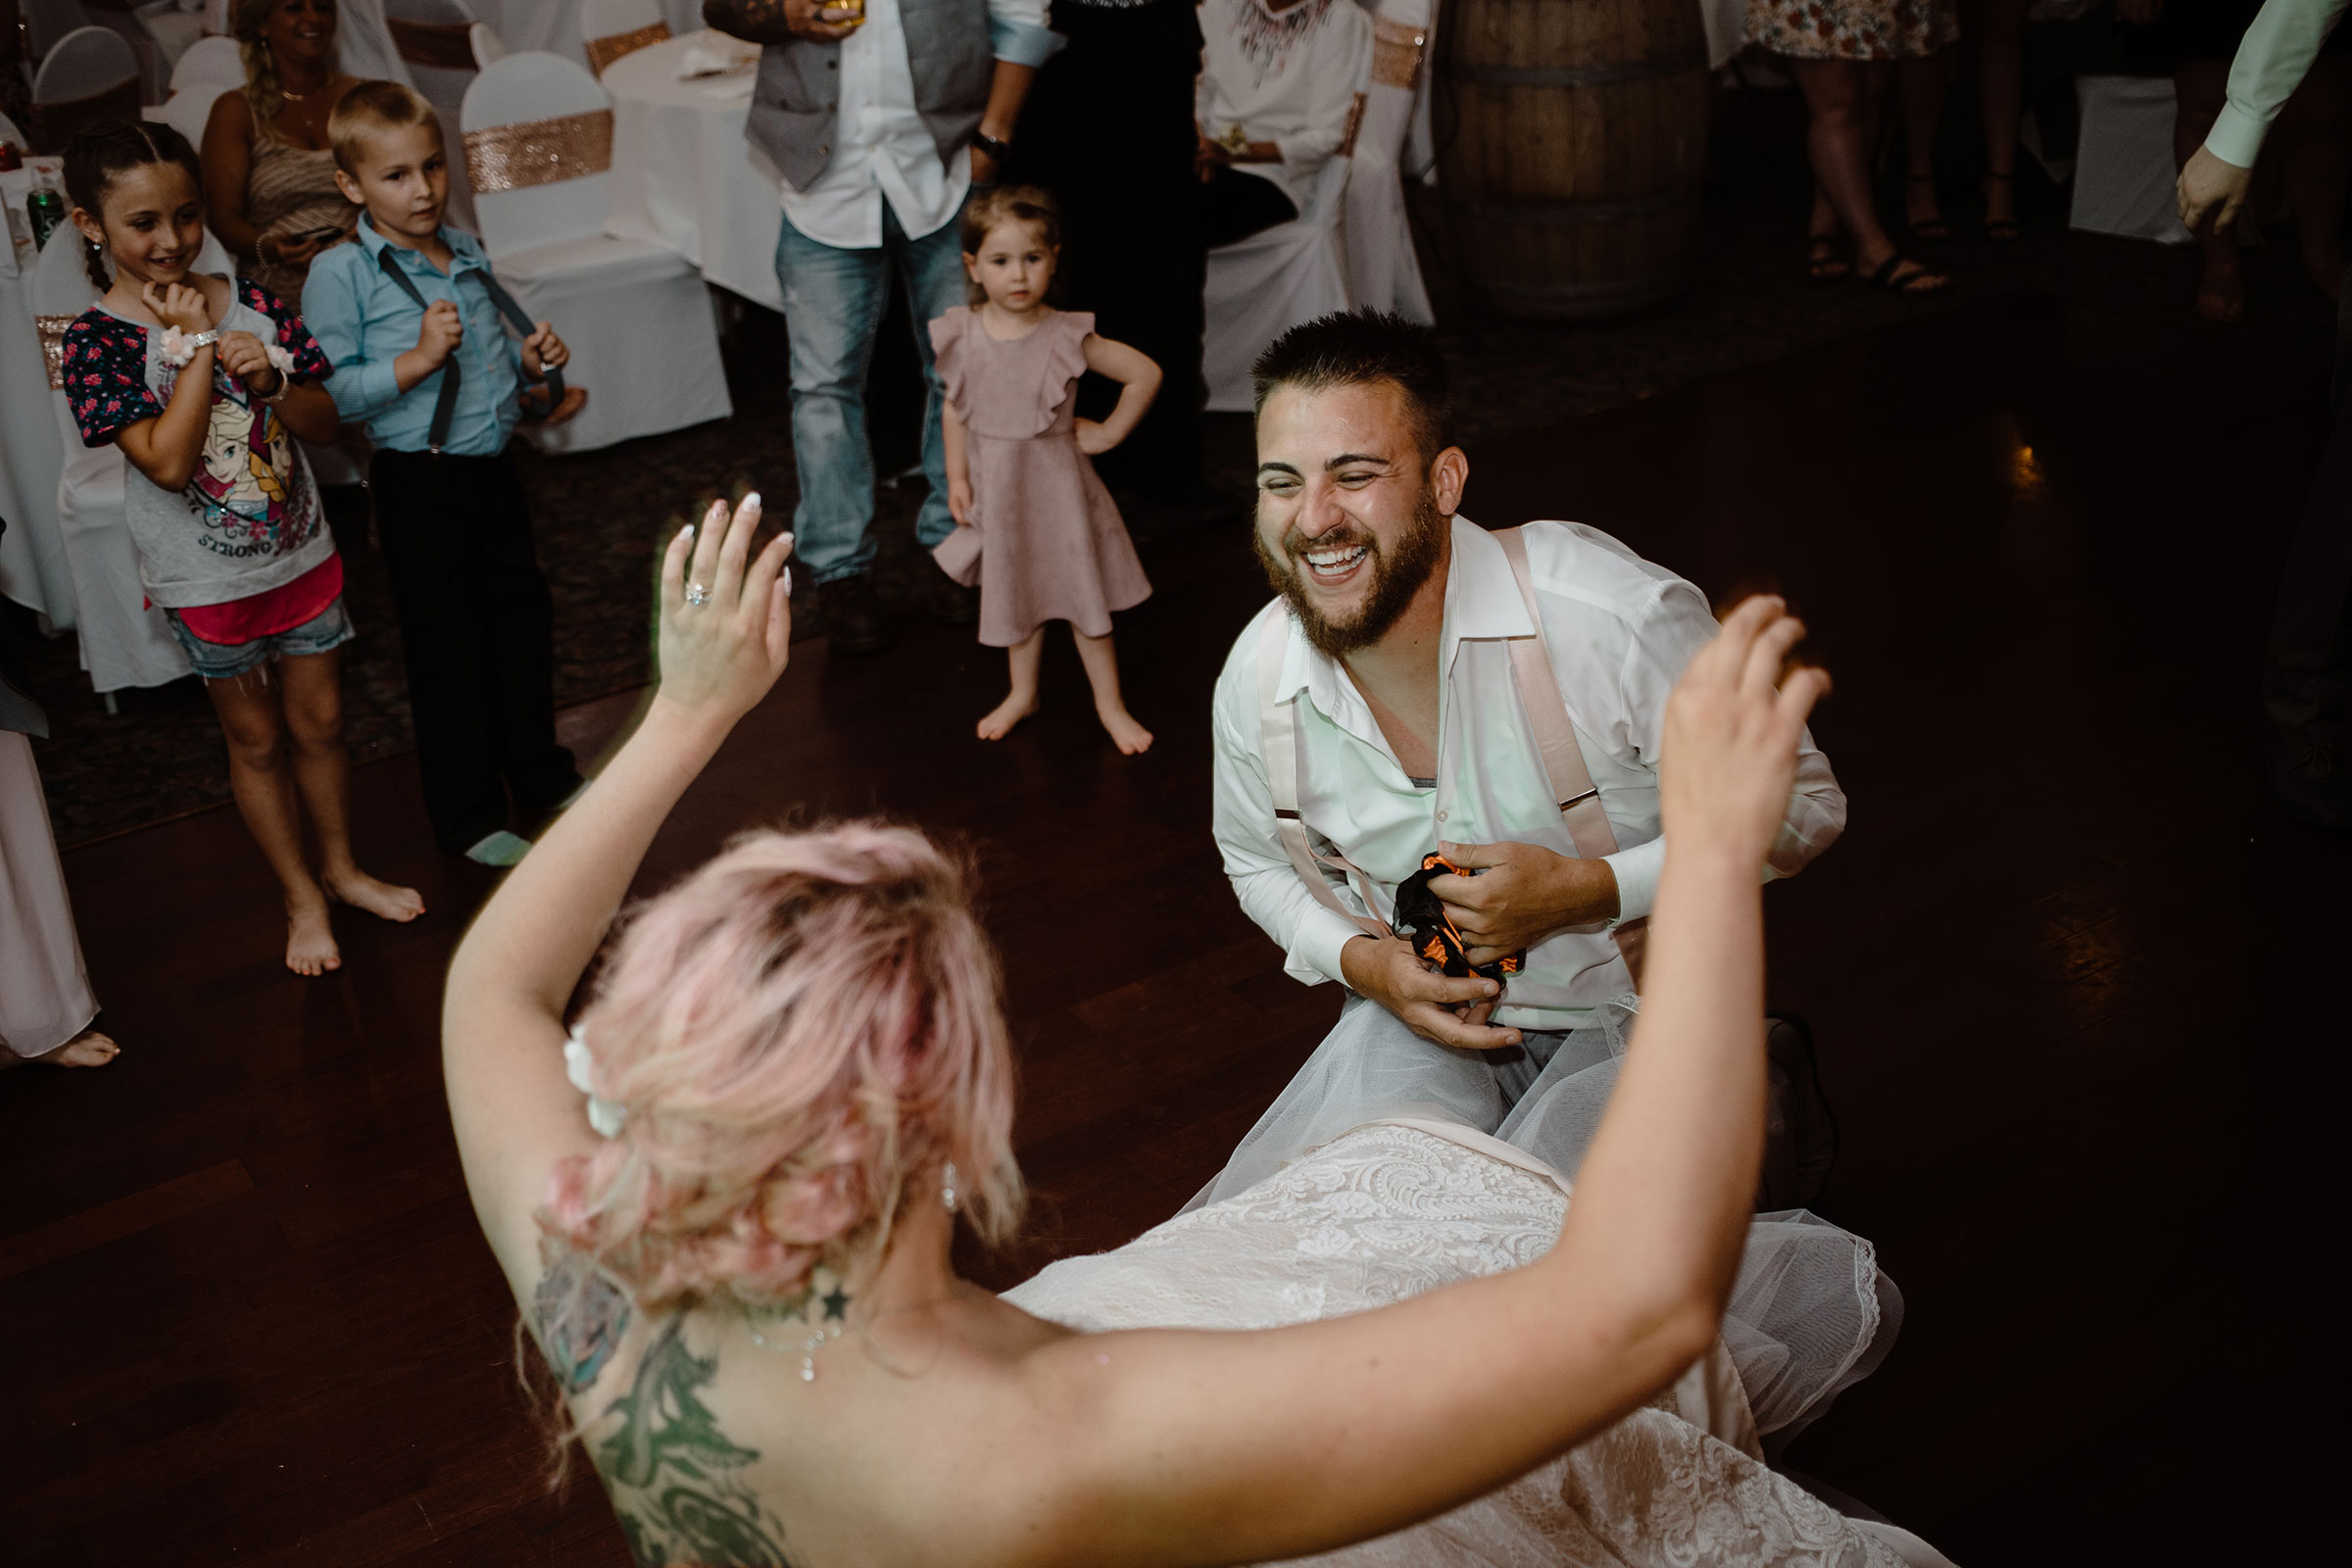 groom-laughing-after-getting-garter-wedding-summerset-winery-indianola-iowa-raelyn-ramey-photography.jpg